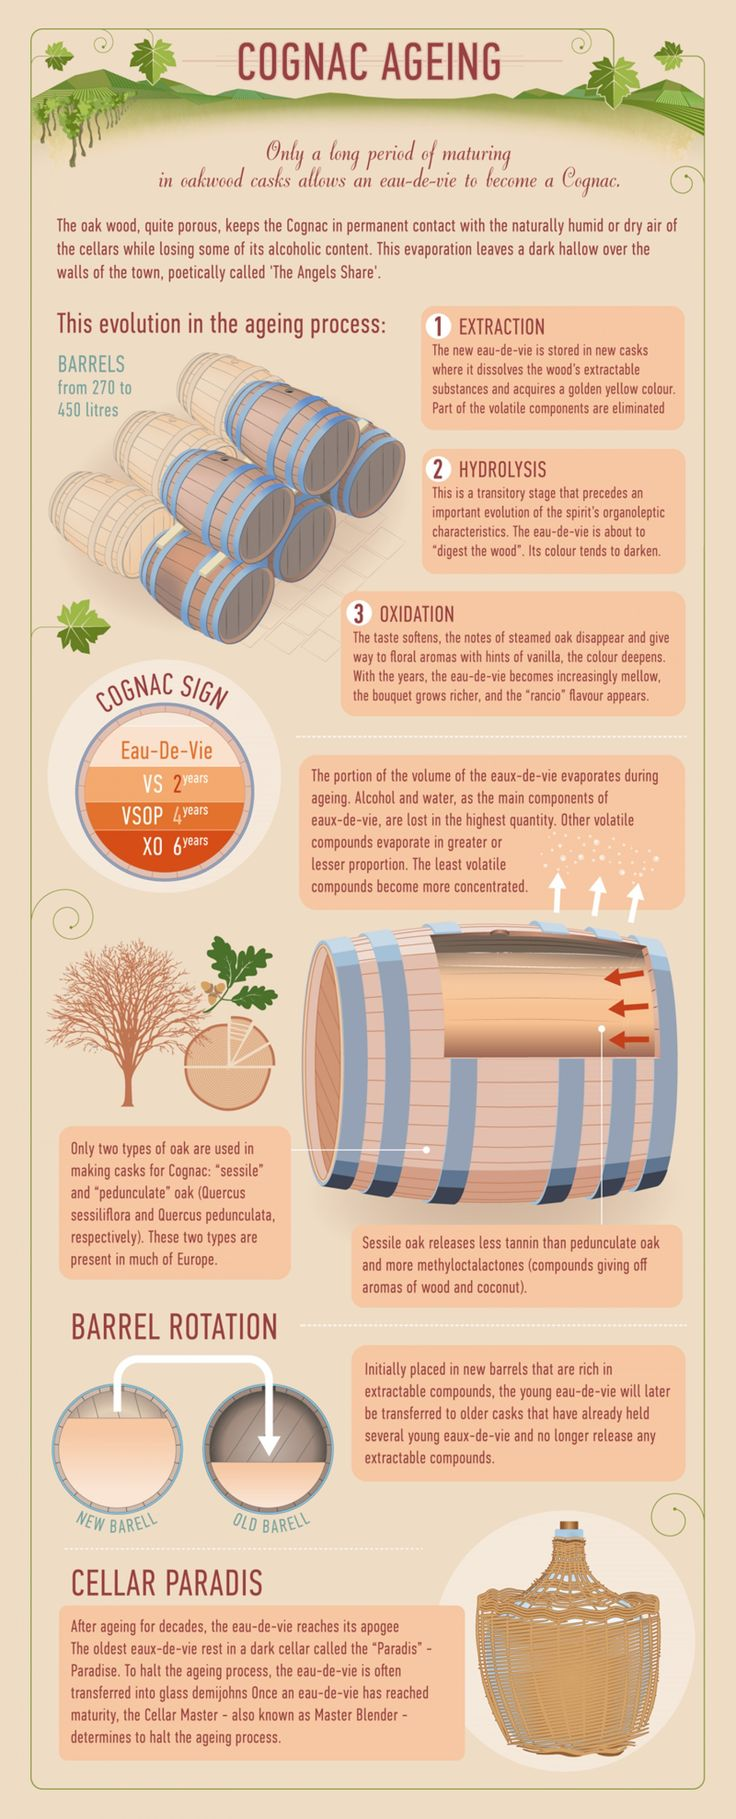 #Cognac Ageing #infographic #infografía  Re-pinned by www.avacationrental4me.com